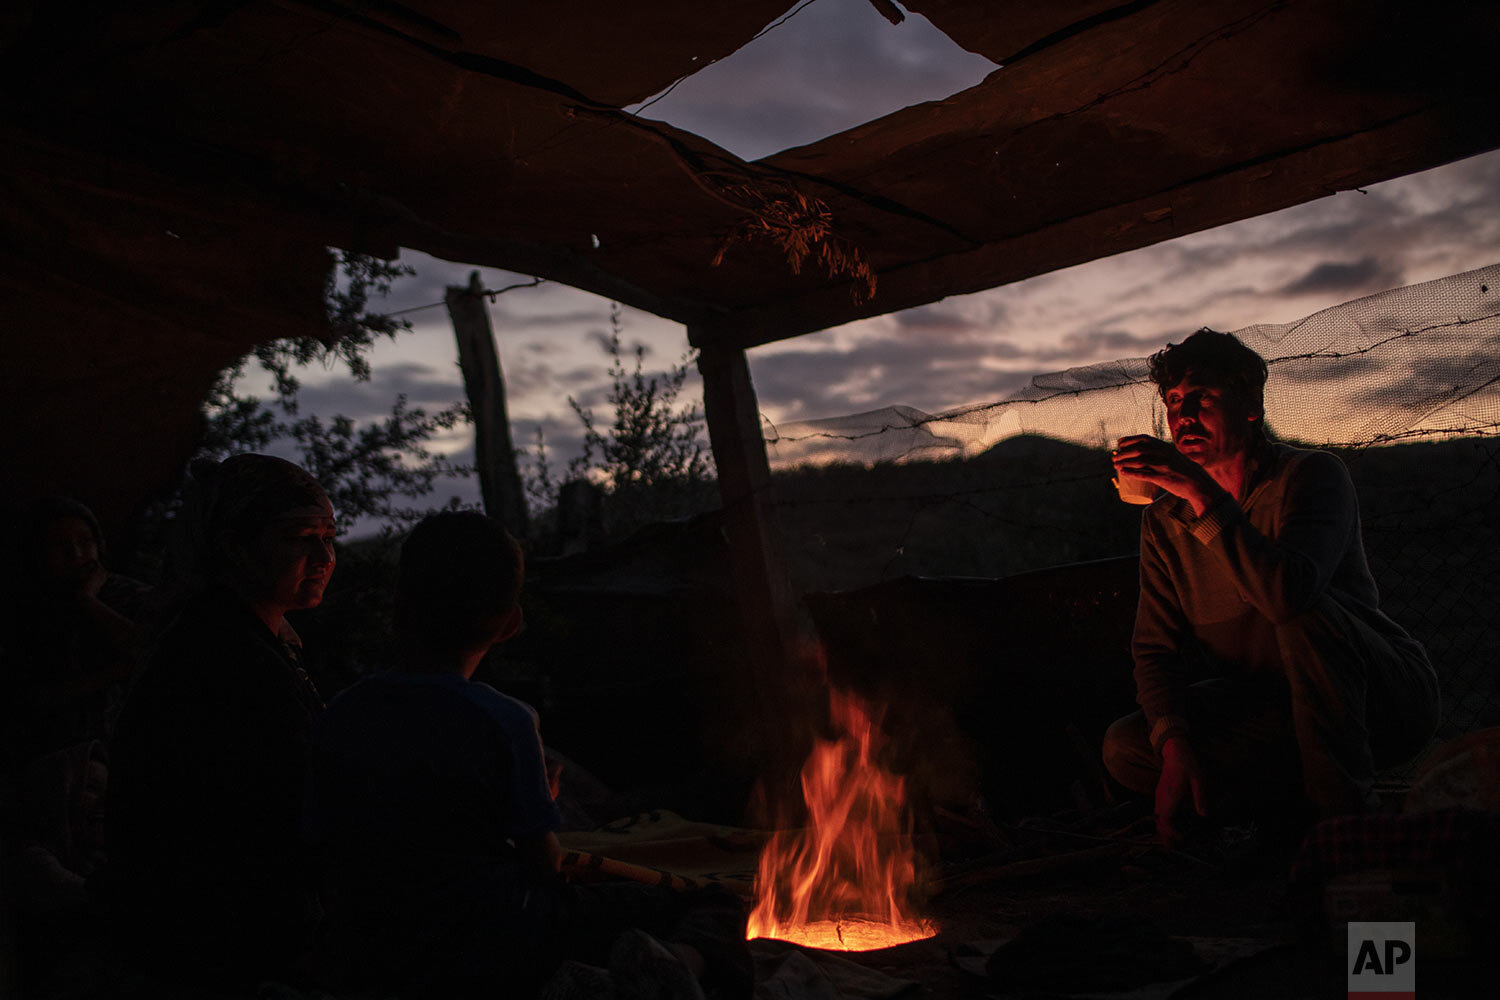 People from Afghanistan drink tea over the fire of a makeshift bakery in the overcrowded Moria refugee and migrant camp, Lesbos island, Greece, Tuesday, Oct. 8, 2019. (AP Photo/Petros Giannakouris)